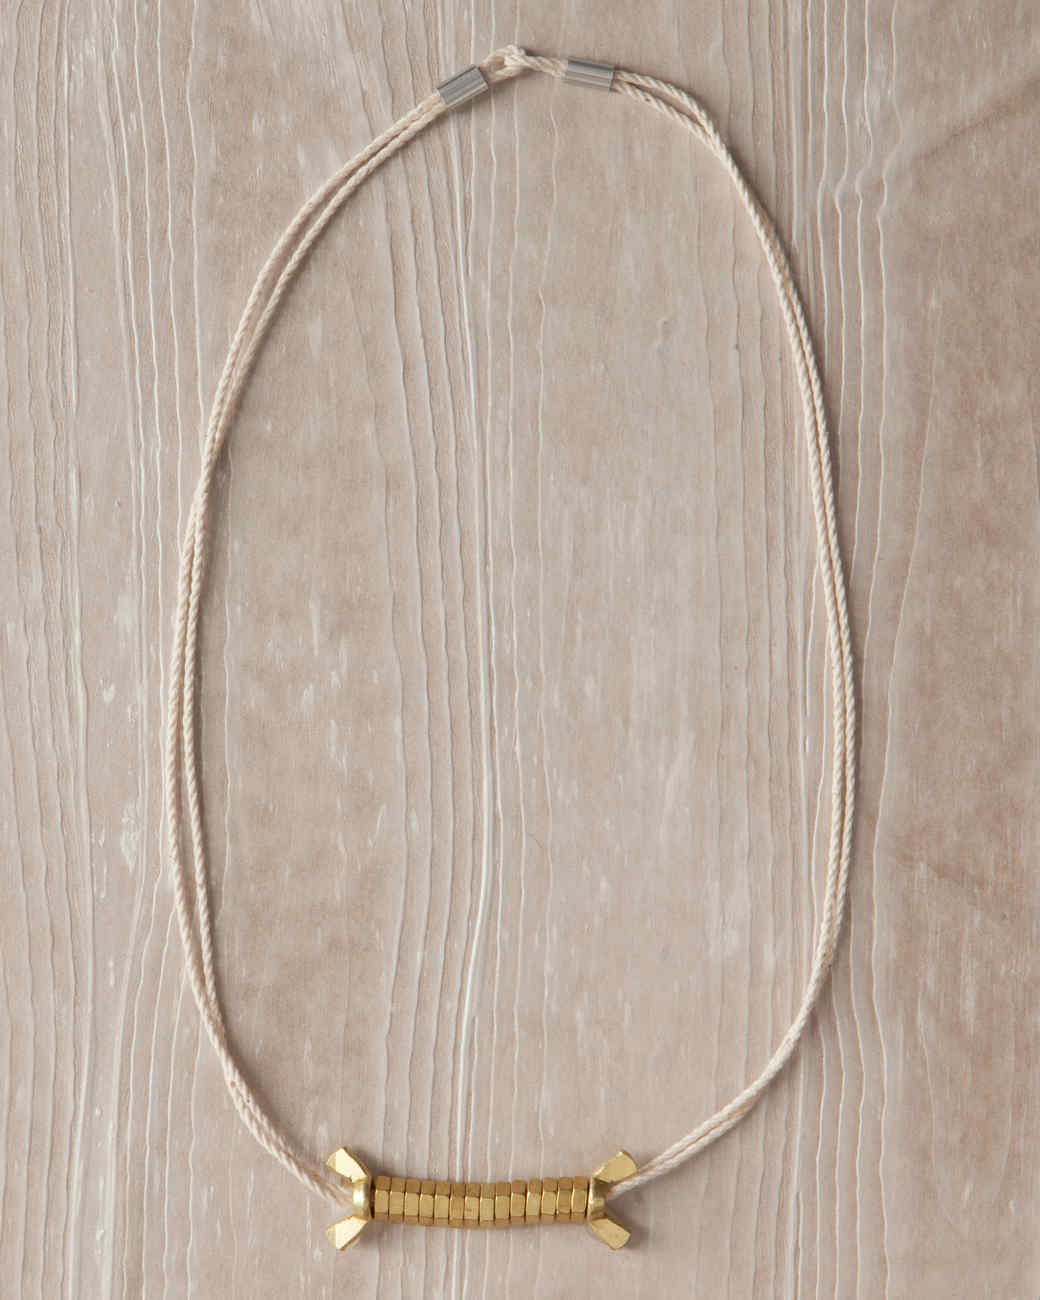 nut-necklace-hardware-jewelry-040-ld110089.jpg